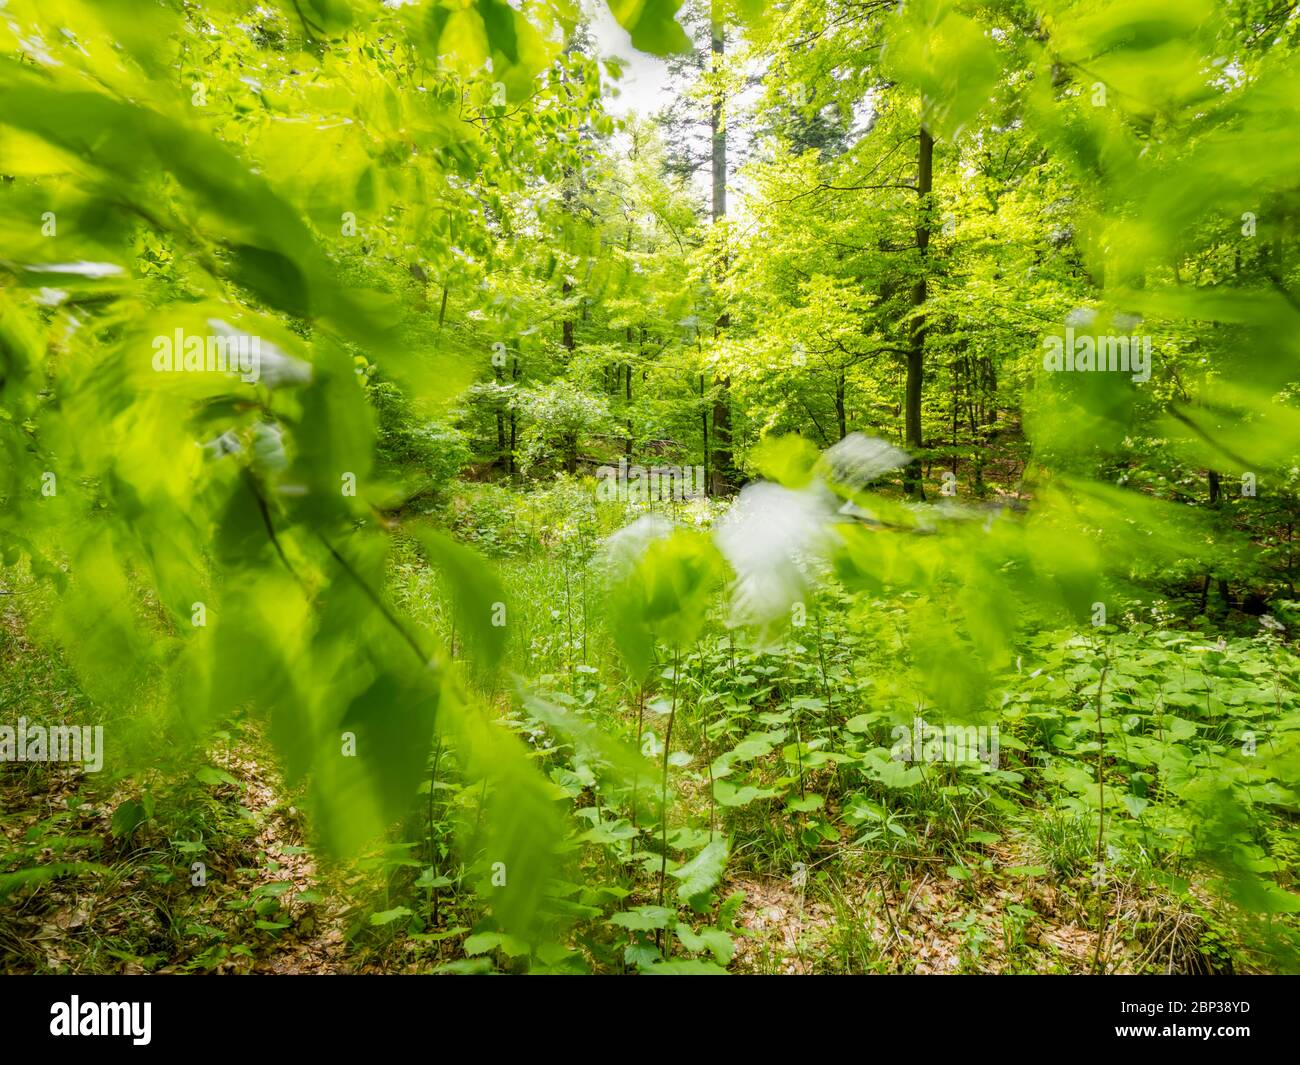 Stunning Spring Green nature color in forest windy movements movement moving leaves tree branches view through leaves Stock Photo